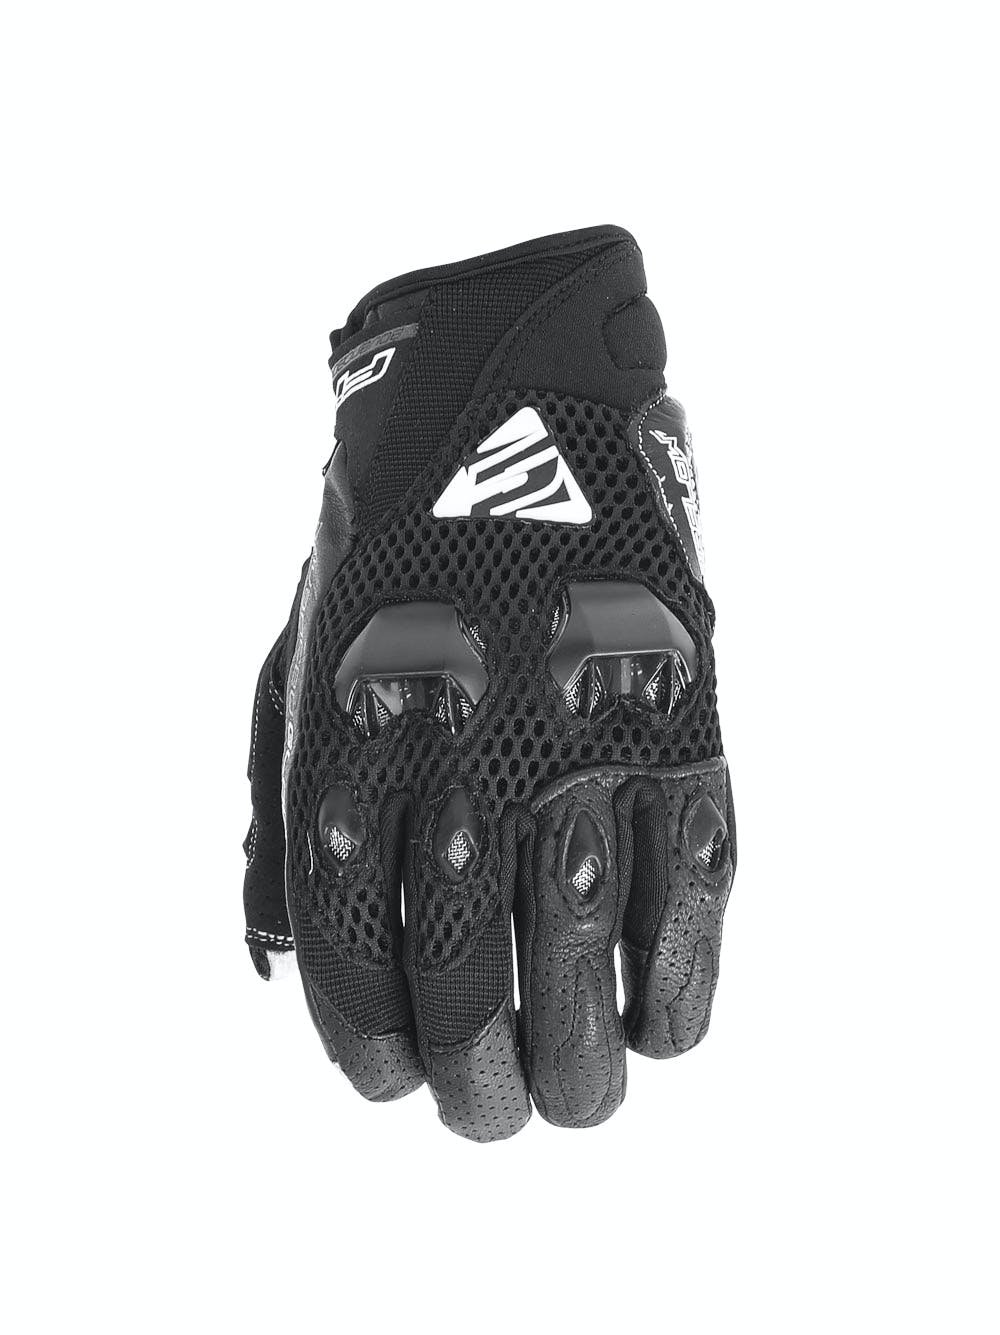 The top of a Five stunt glove